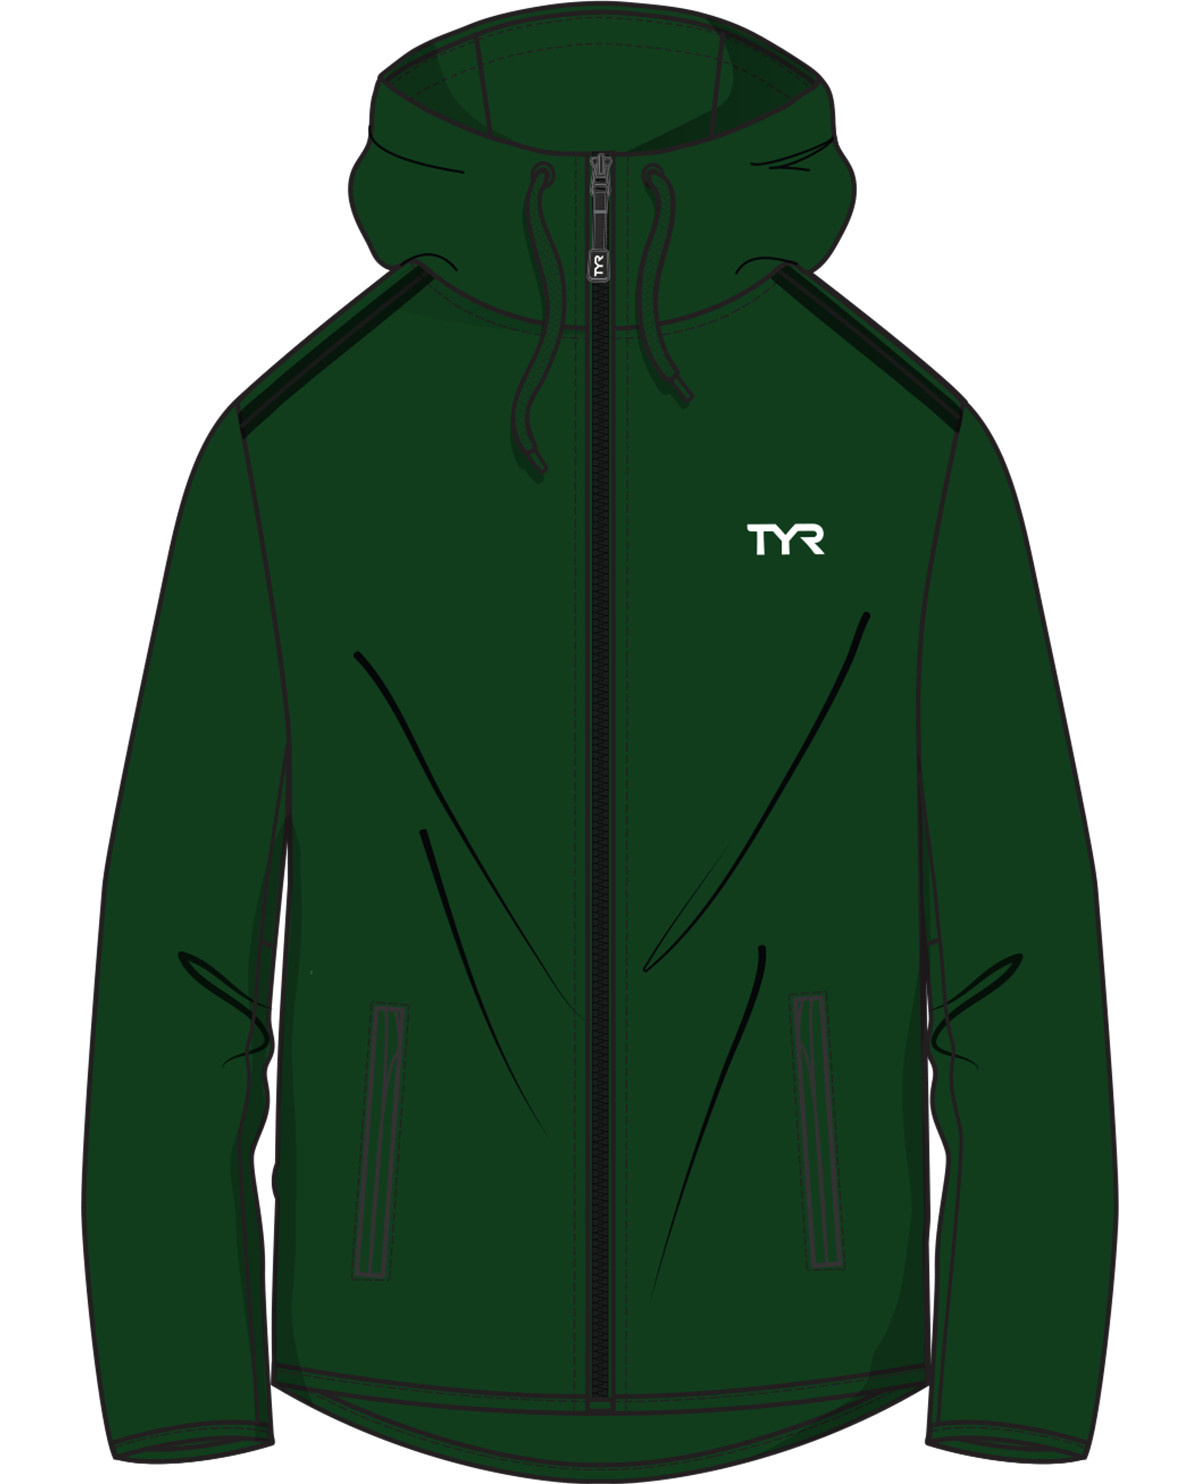 TYR MSC Male Warm Up Jacket